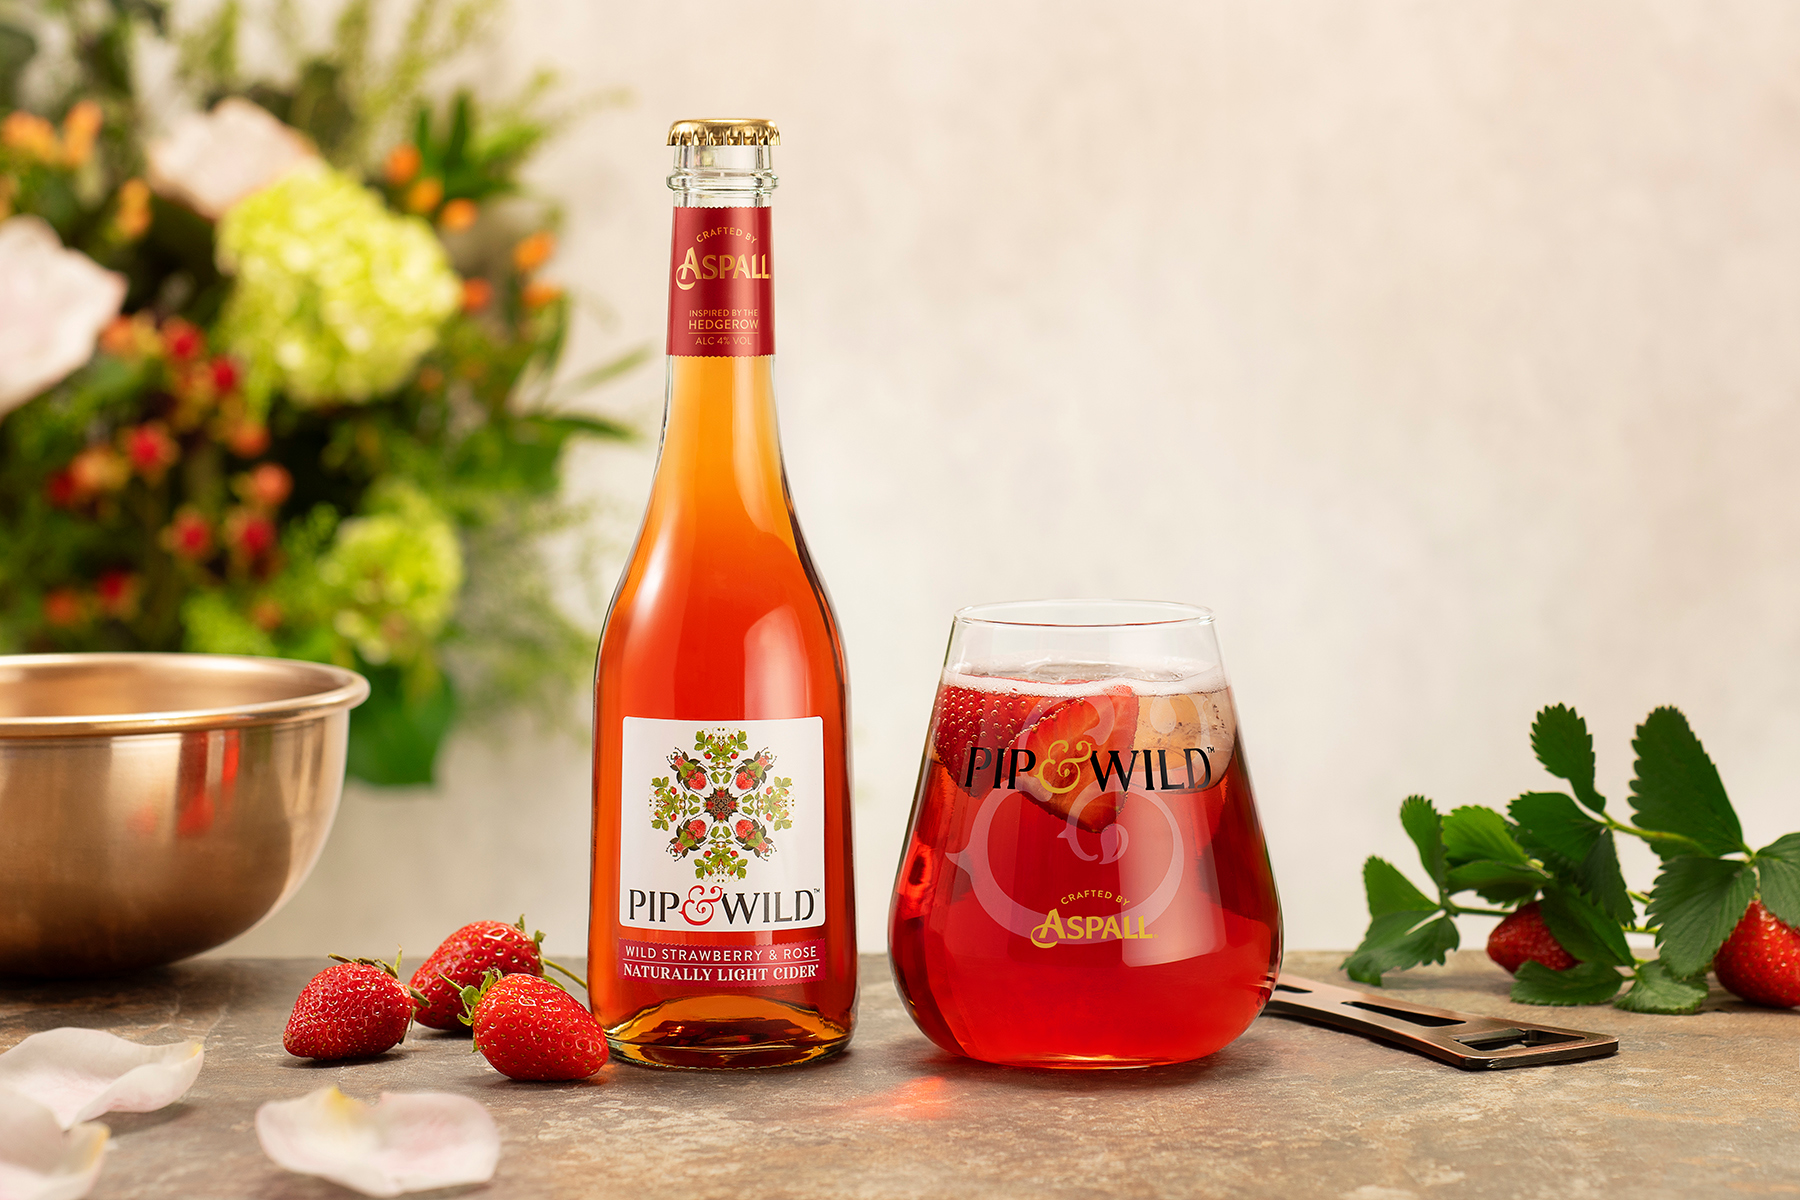 Pip & Wild cider bottle and glass on a stone table with strawberry garnishes